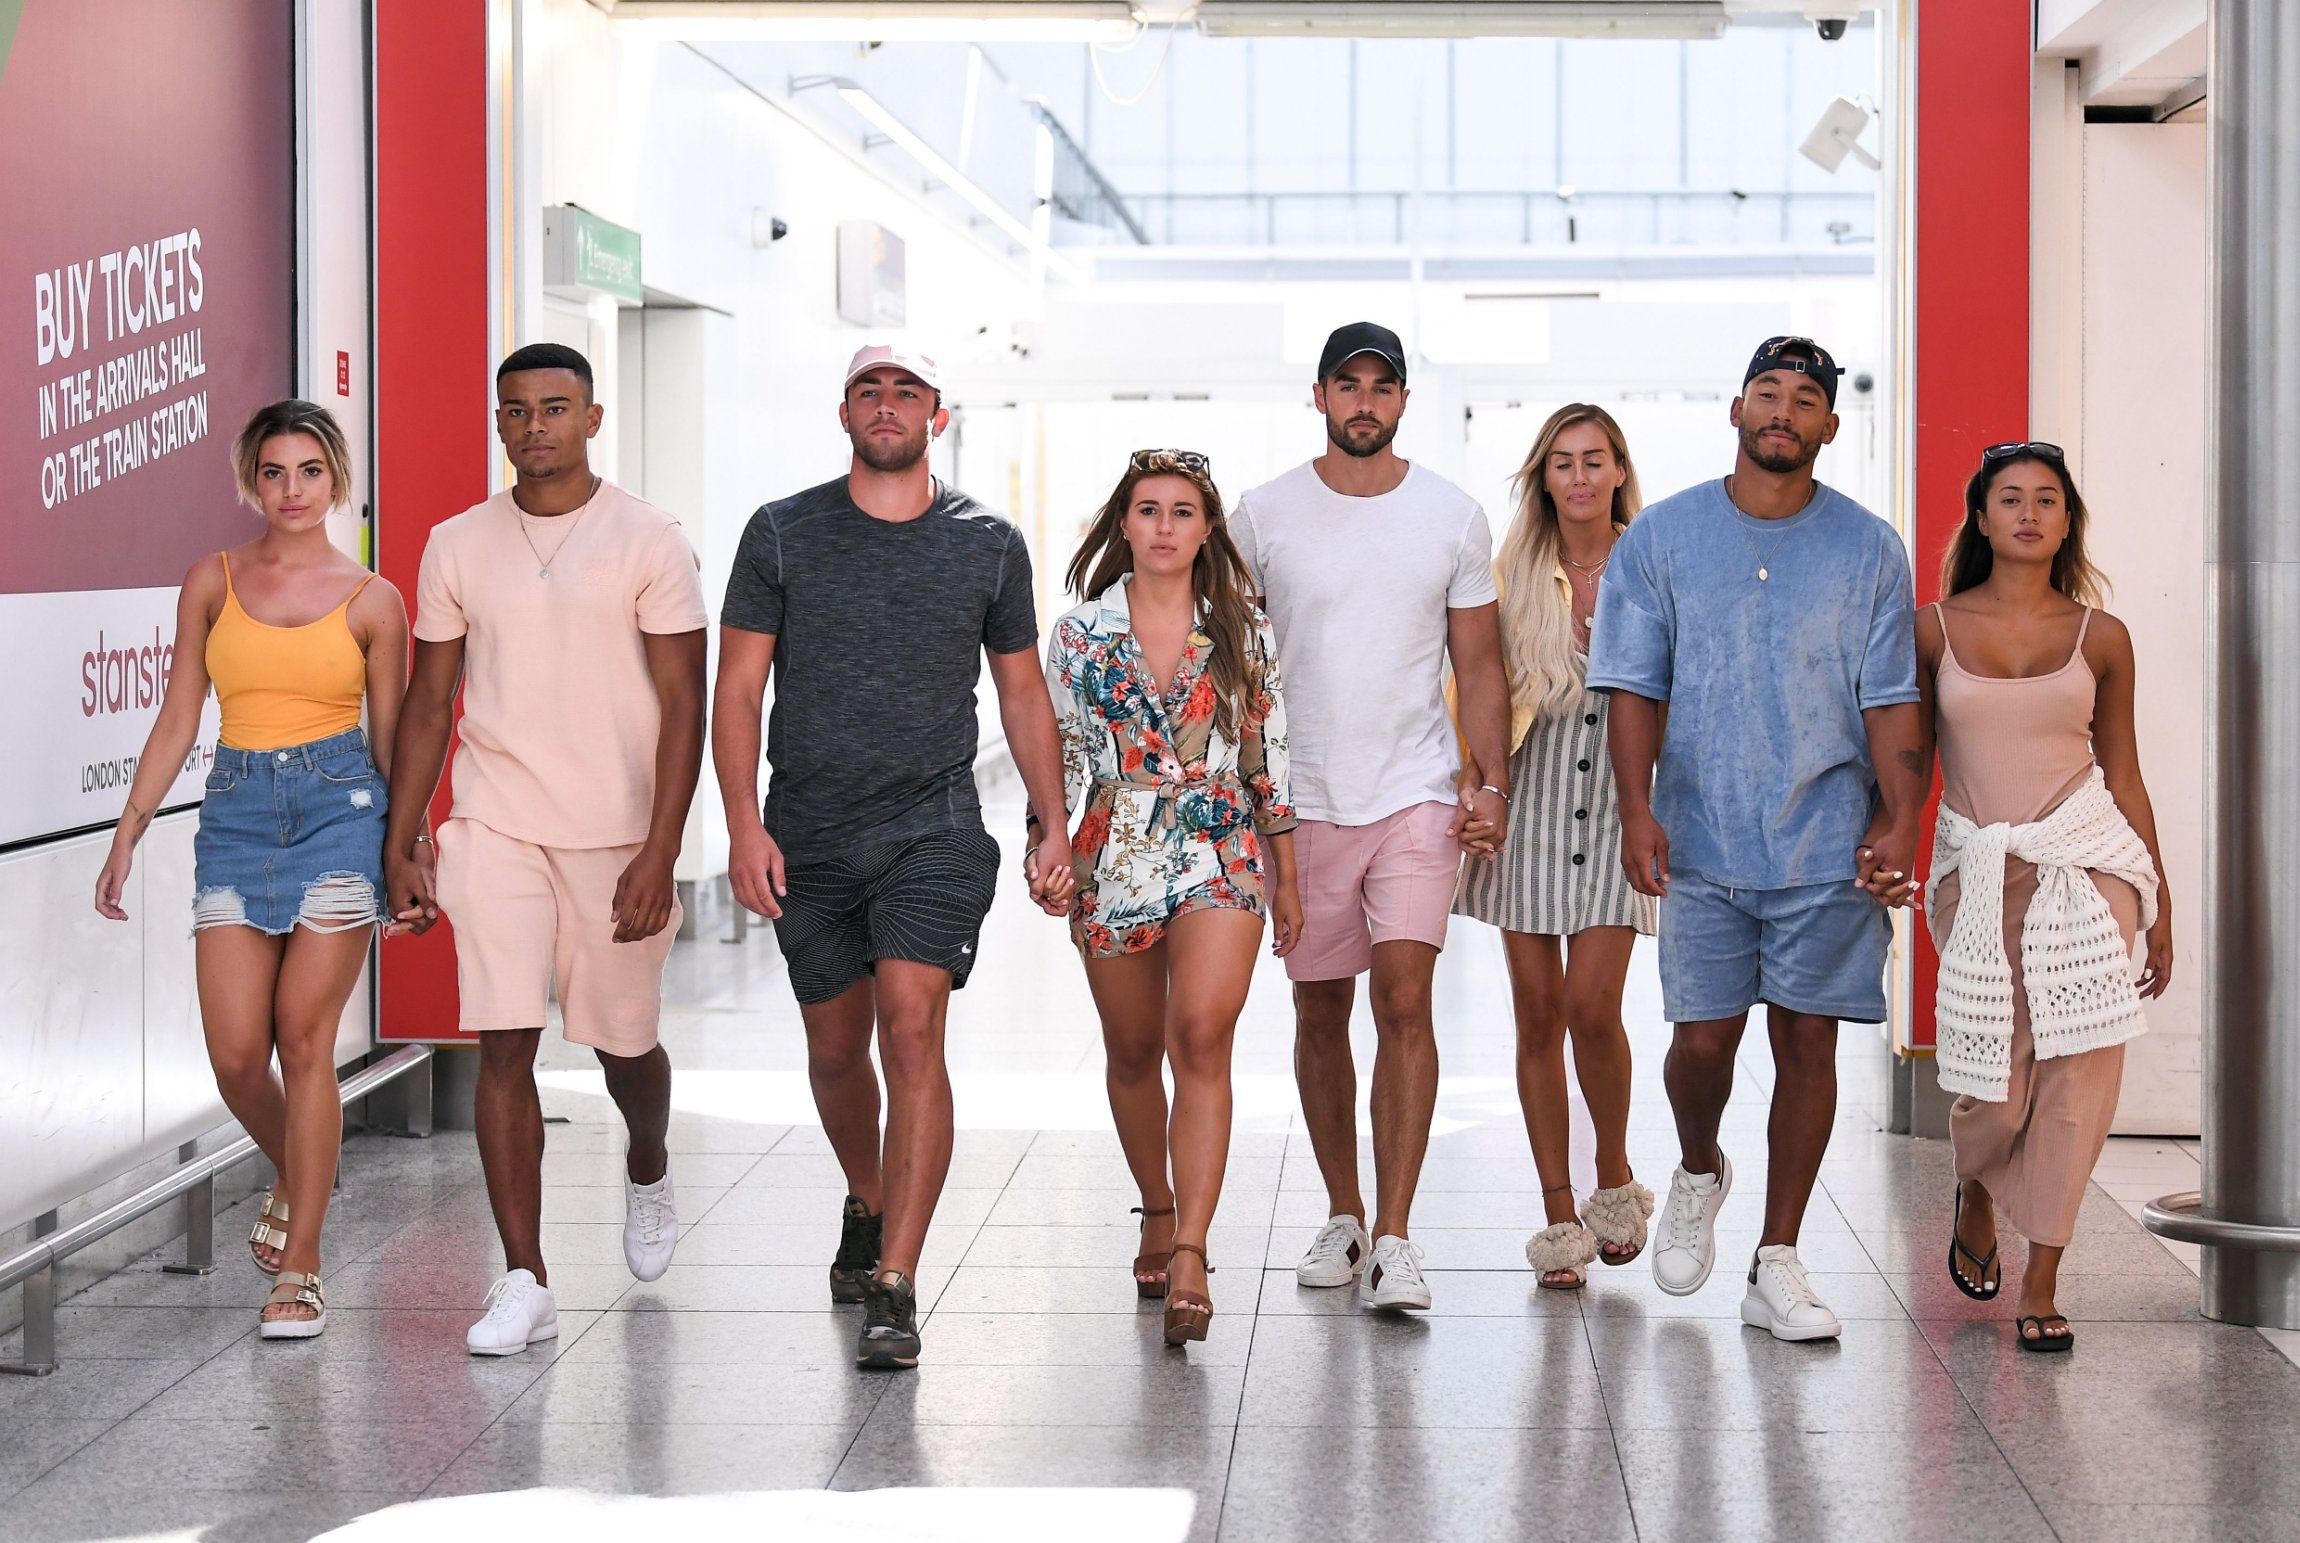 Editorial Use Only. No Merchandising. No Commercial Use Mandatory Credit: Photo by James Gourley/ITV/REX/Shutterstock (9774588bh) Megan Barton Hanson and Wes Nelson, Dani Dyer and Jack Fincham, Laura Anderson and Paul Knops and Kazimir Crossley and Josh Denzel arriving back at Stansted Airport after flying in from Palma de Mallorca 'Love Island' TV Show, Series 4, heading home, Majorca, Spain - 31 Jul 2018